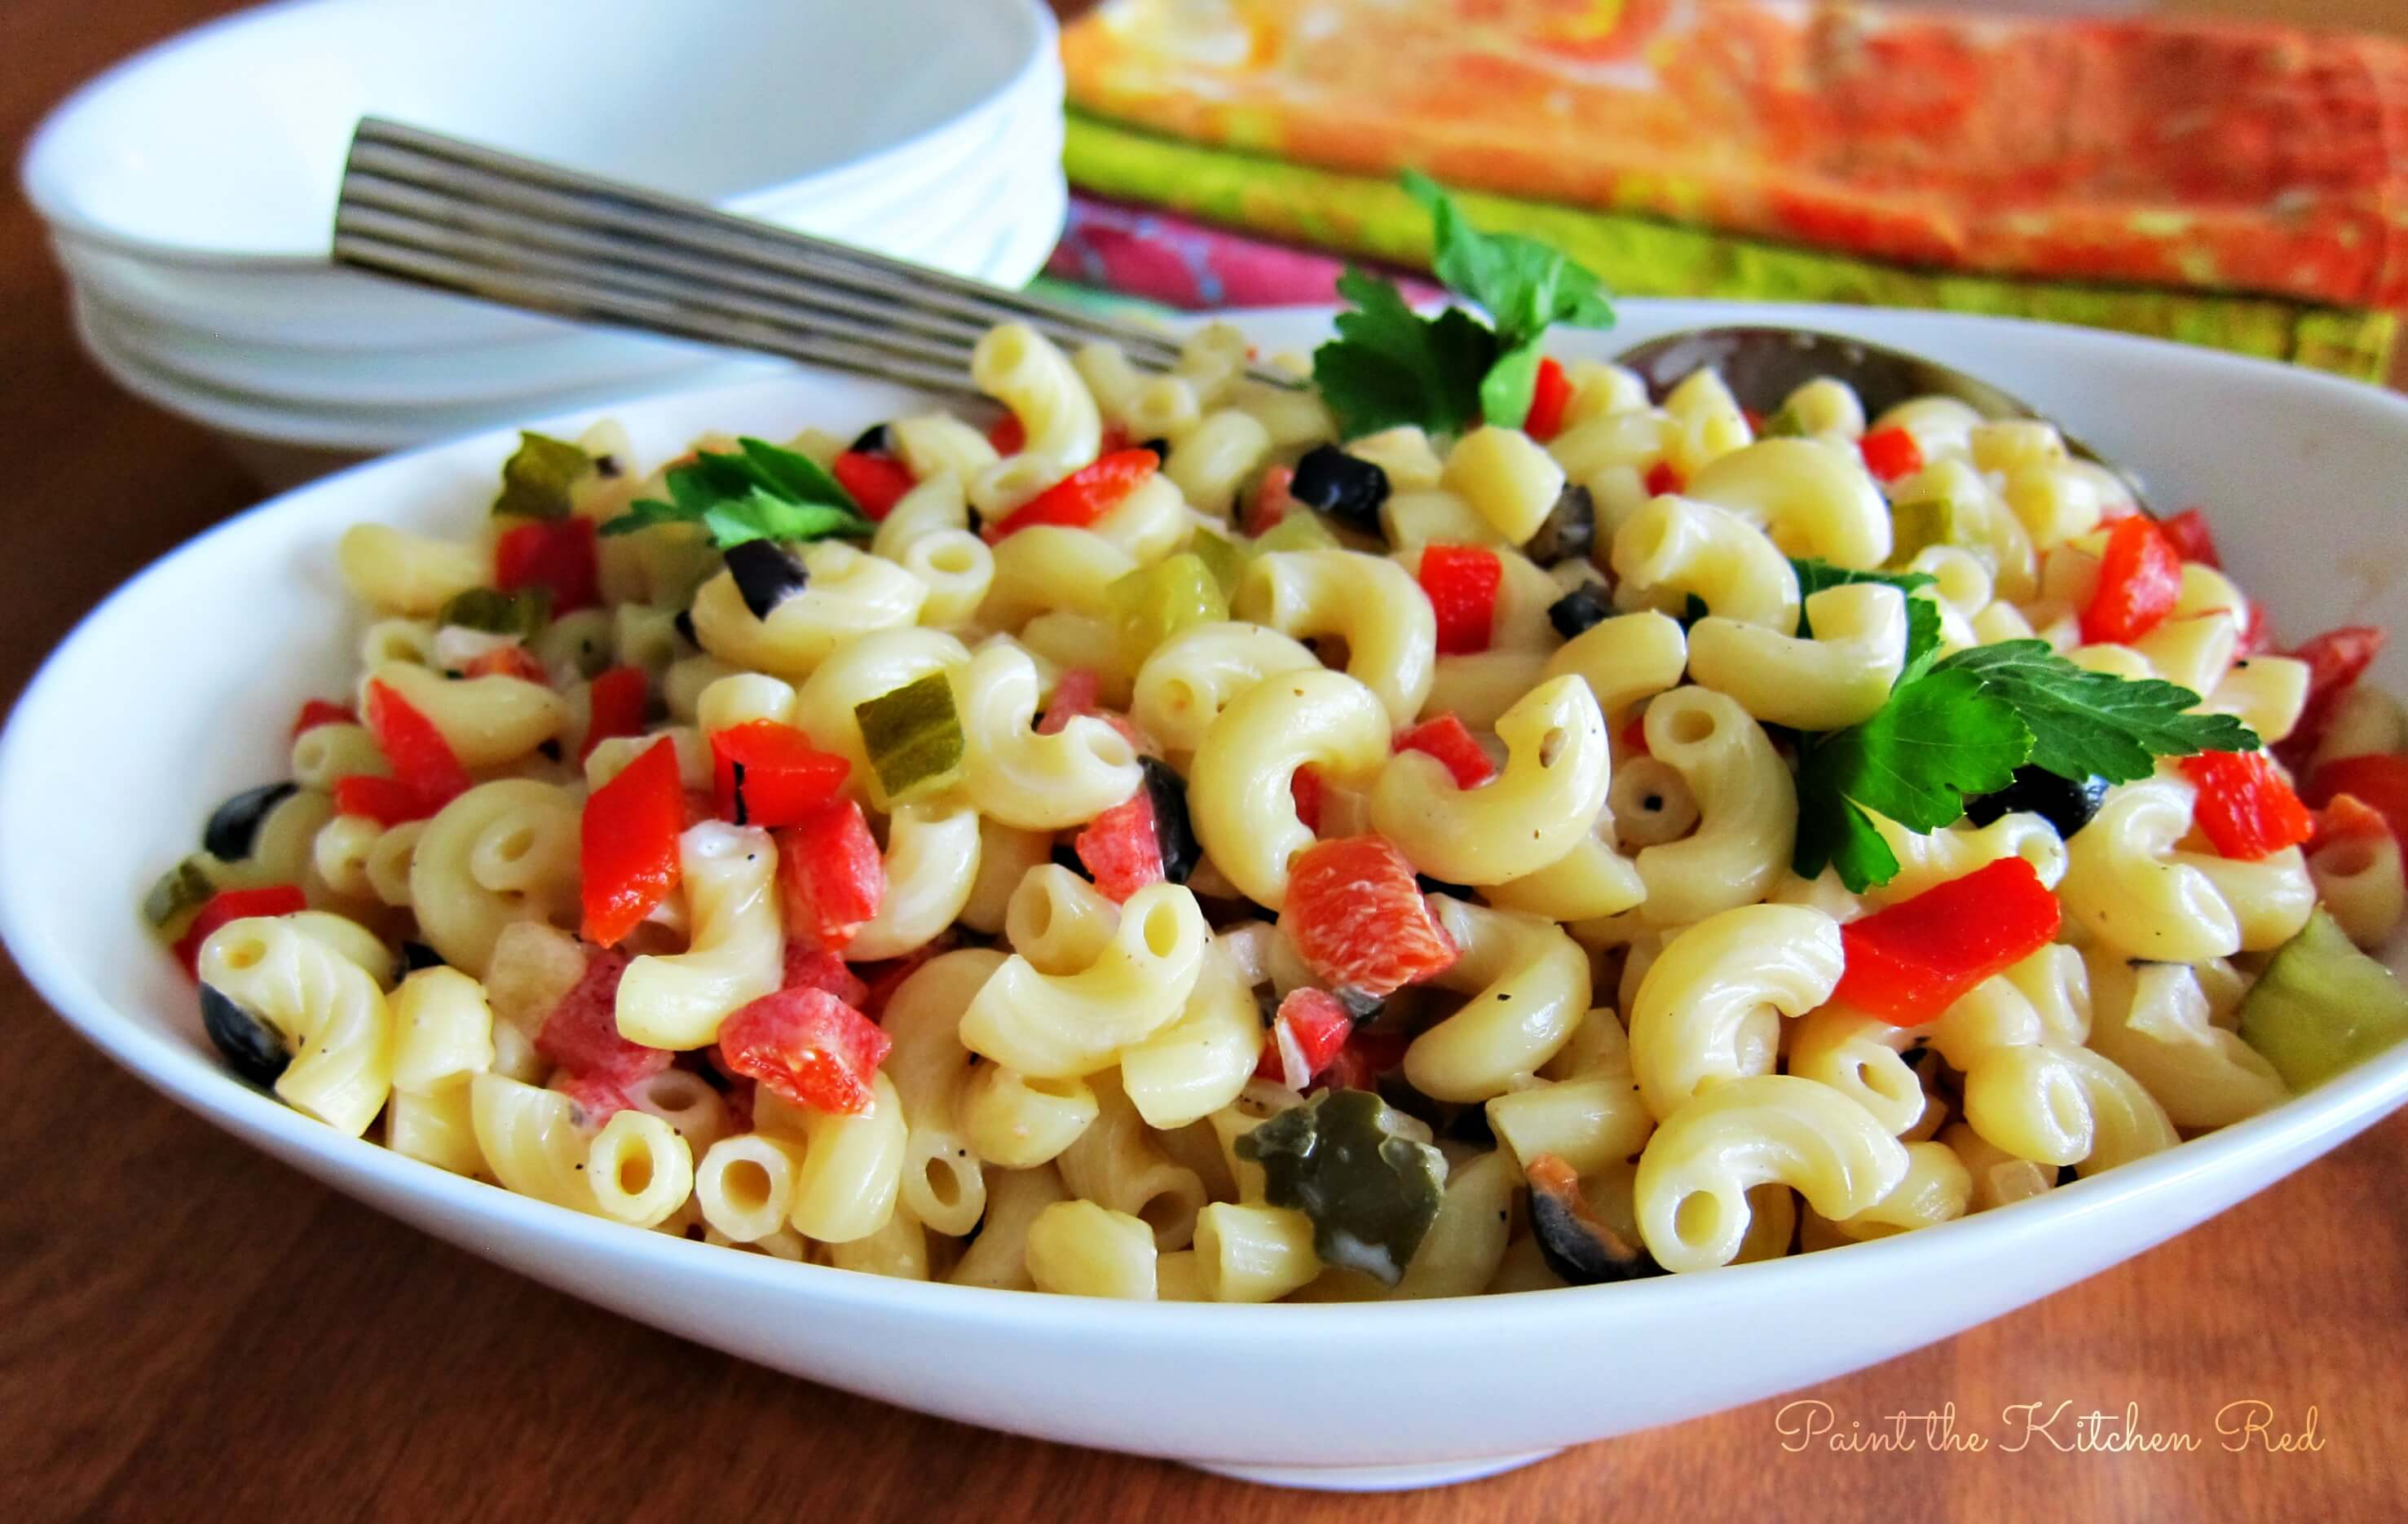 Best pasta salad paint the kitchen red for Best summer pasta salad recipes ever